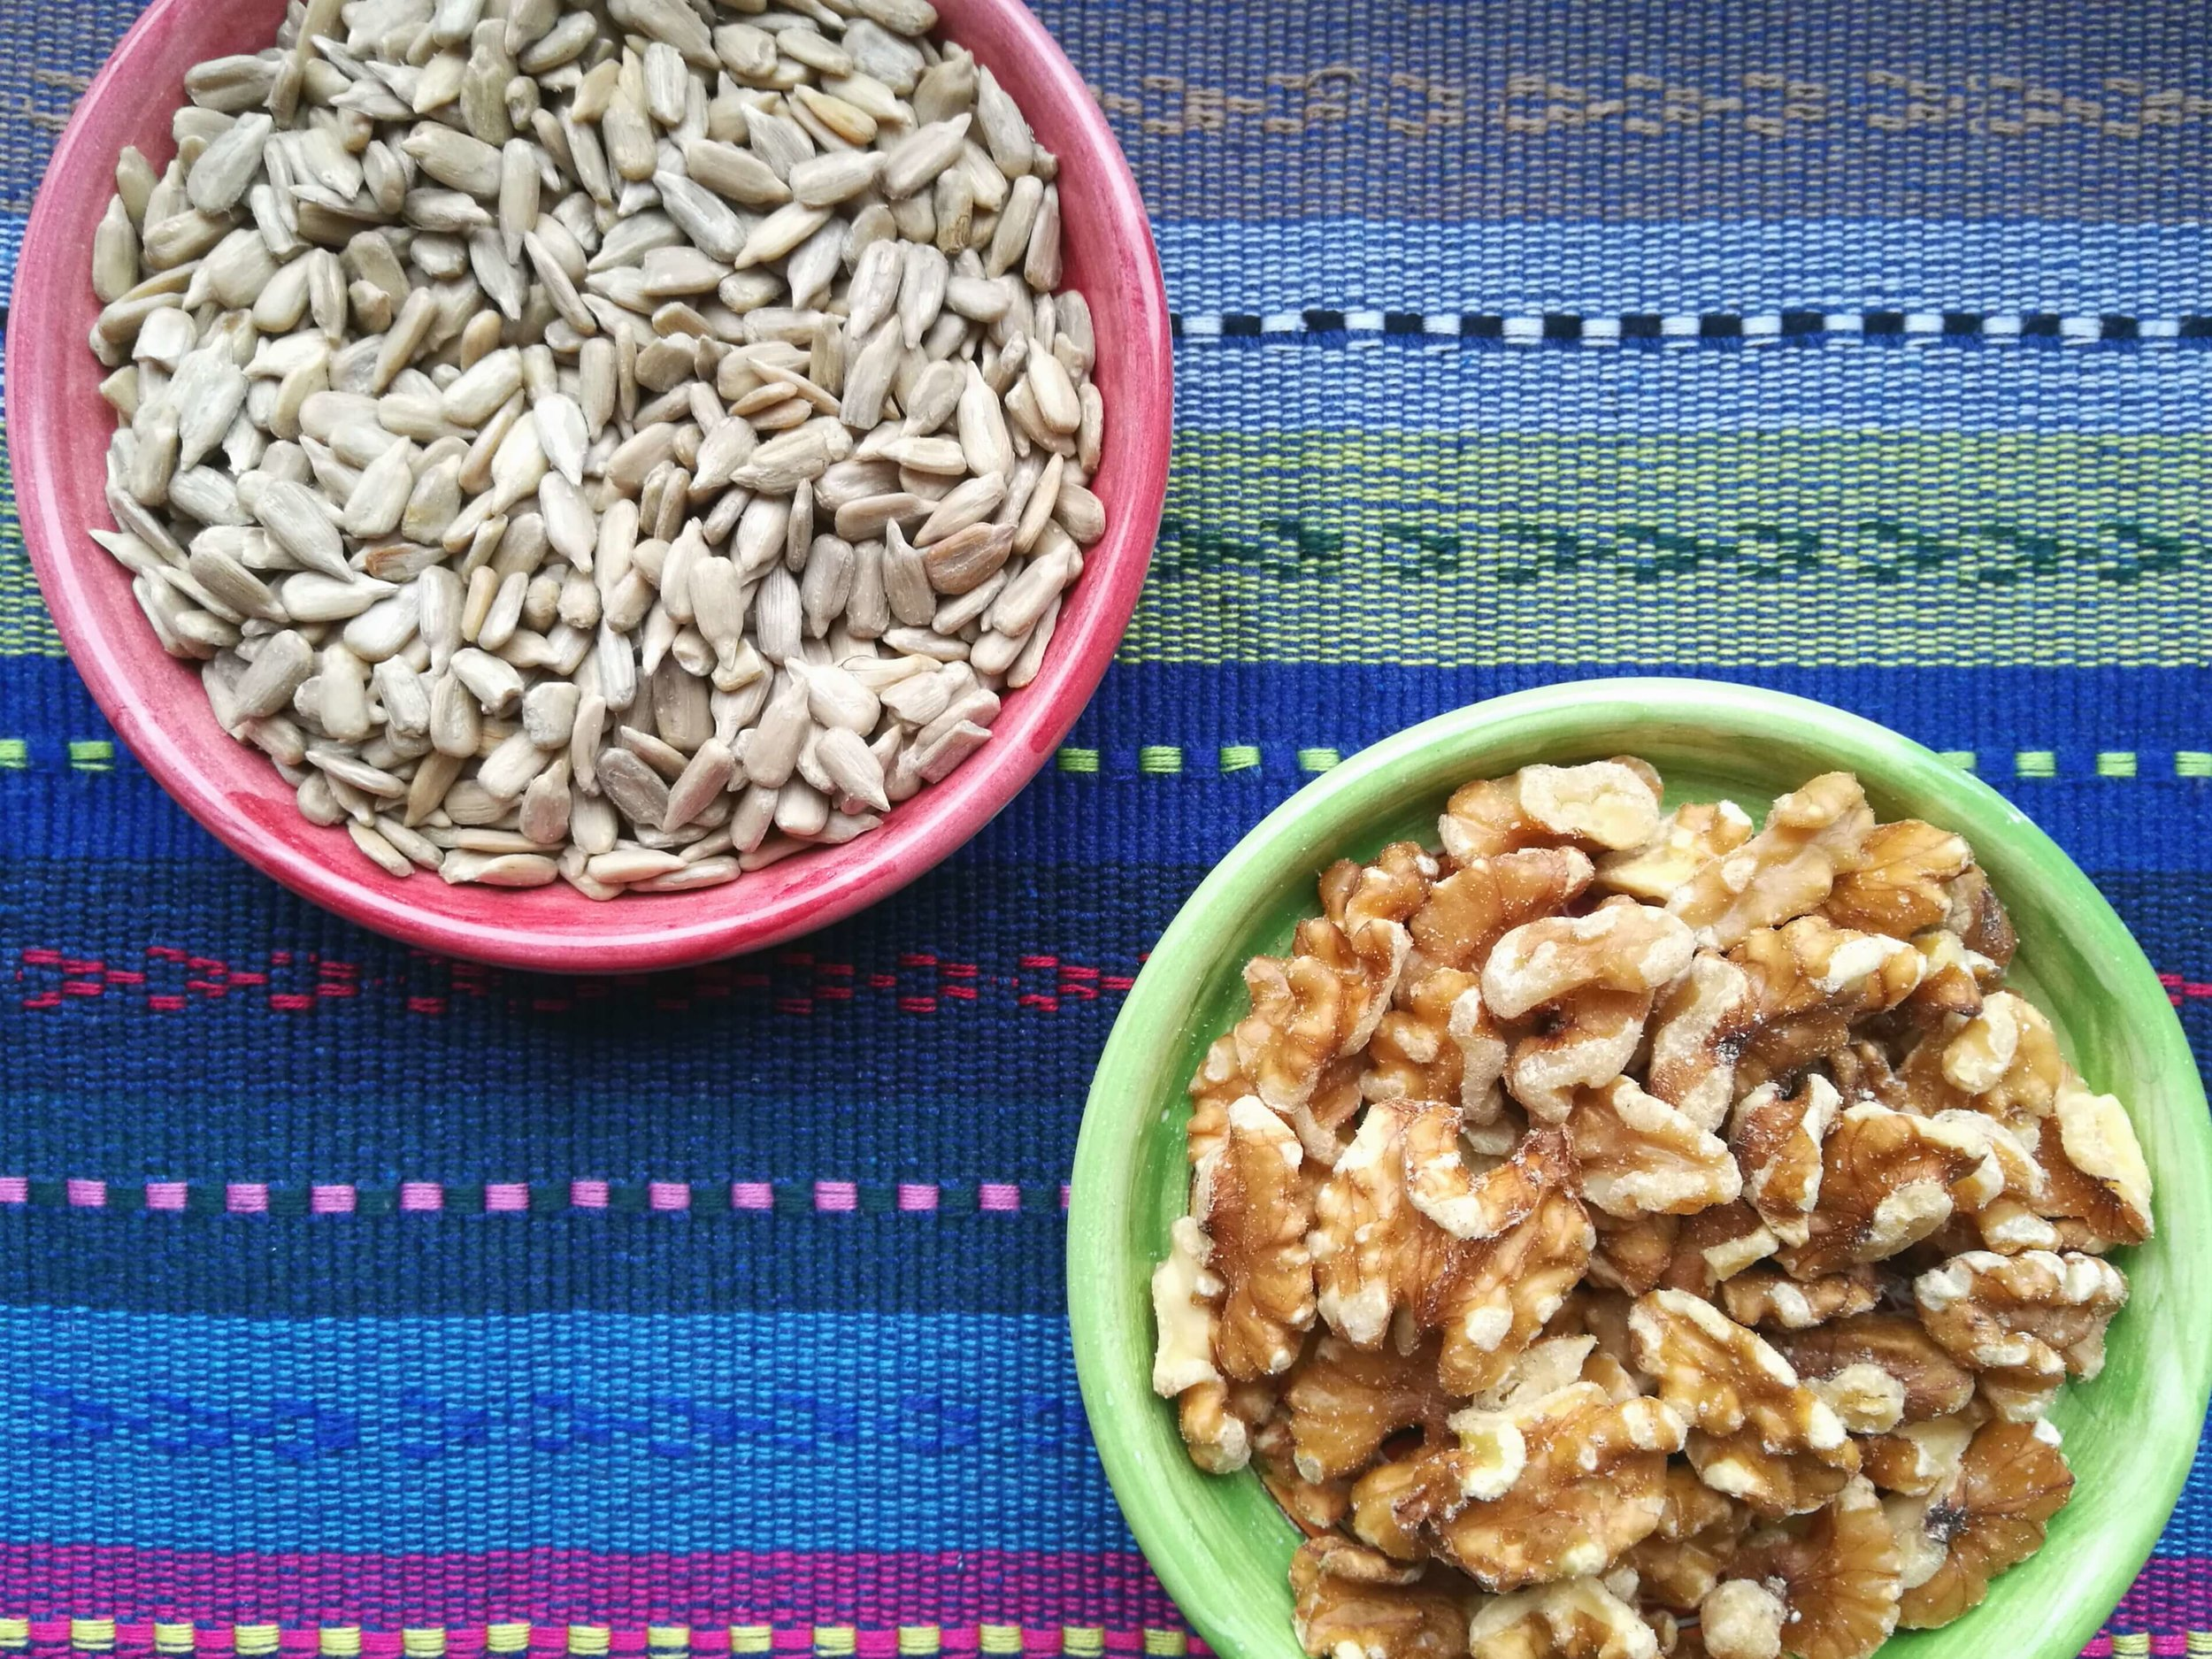 Sunflower seeds and walnuts, like other seeds and nuts, are great sources of protein.